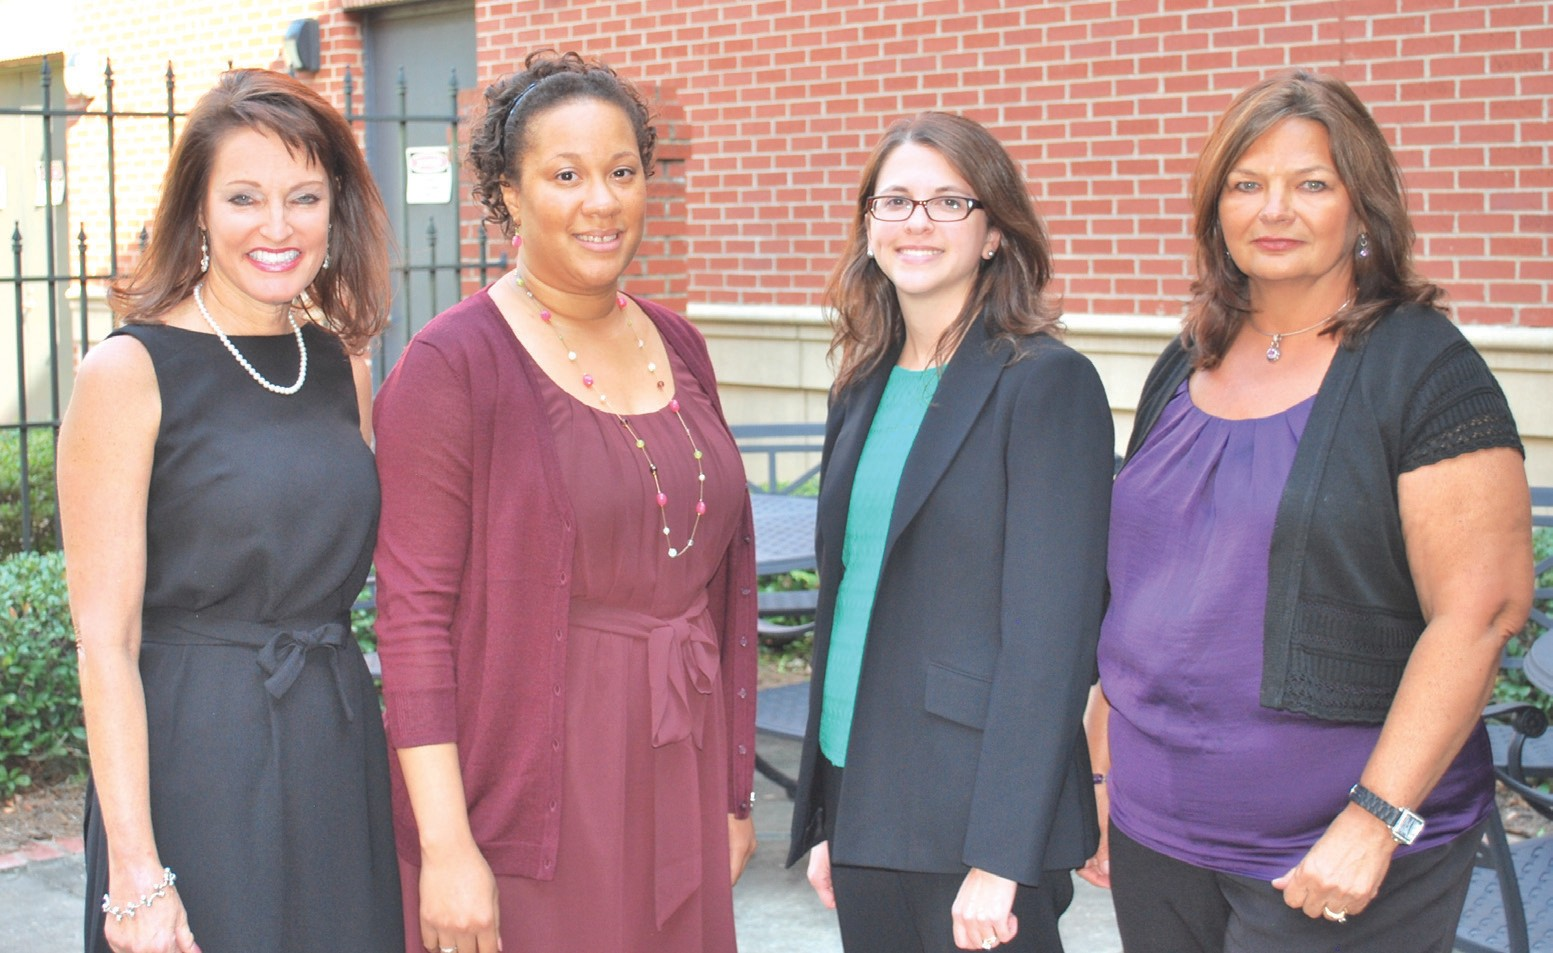 L-R Marti B. Cribbs of Georgetown K-8, Monica N. Roland of Oglethorpe Charter, Natalie Chase of Windsor Forest High School, and Linda Byerly of Jacob G. Smith.